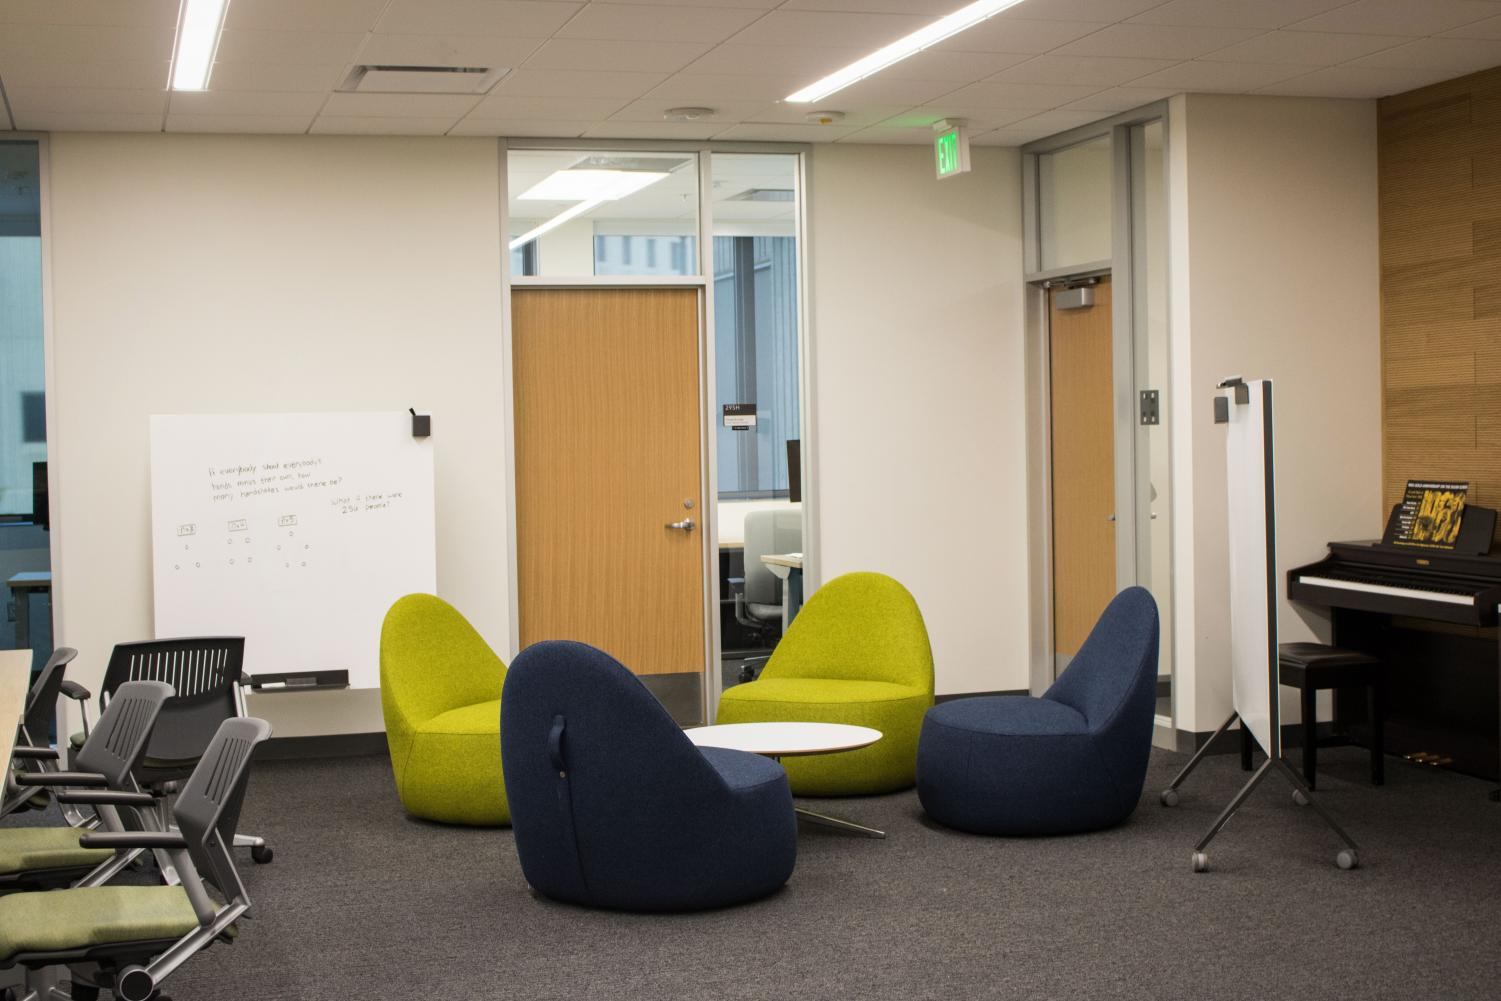 Honors+College+suite+in+Founders+Hall+offers+space+for+students+to+collaborate.+